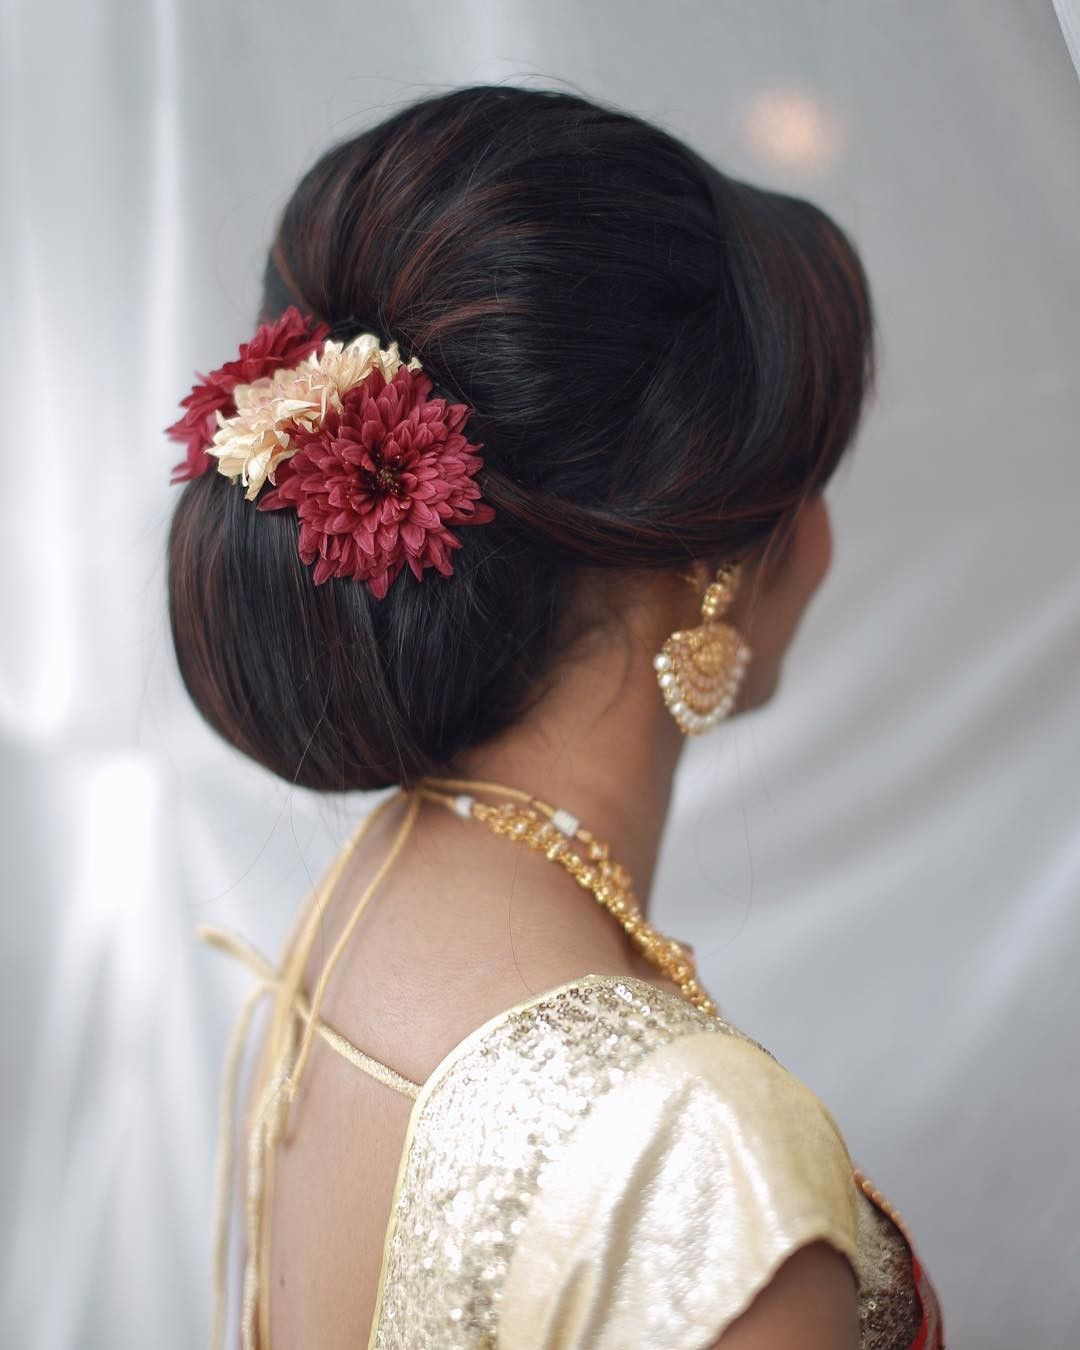 What A Beautiful Large Low Bun With Real Flower Gajra Care However Should Be Taken Before Adopting Such Low Bun Wedding Hair Bun Hairstyles Low Bun Hairstyles